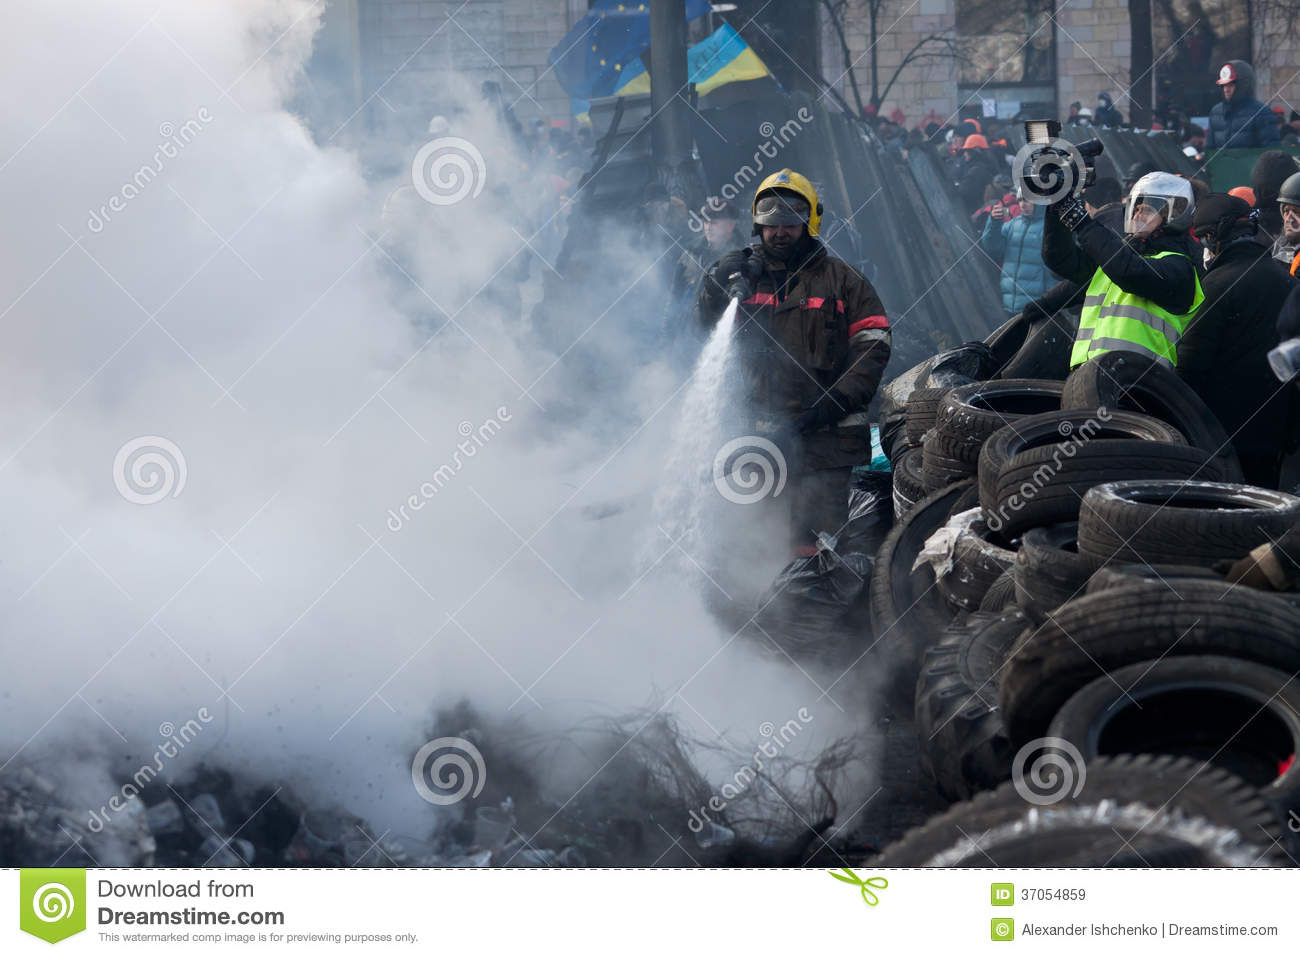 KIEV  UKRAINE - 23 JANUARY 2014  Firefighters extinguish a fire at the    Ukraine Revolution Fire